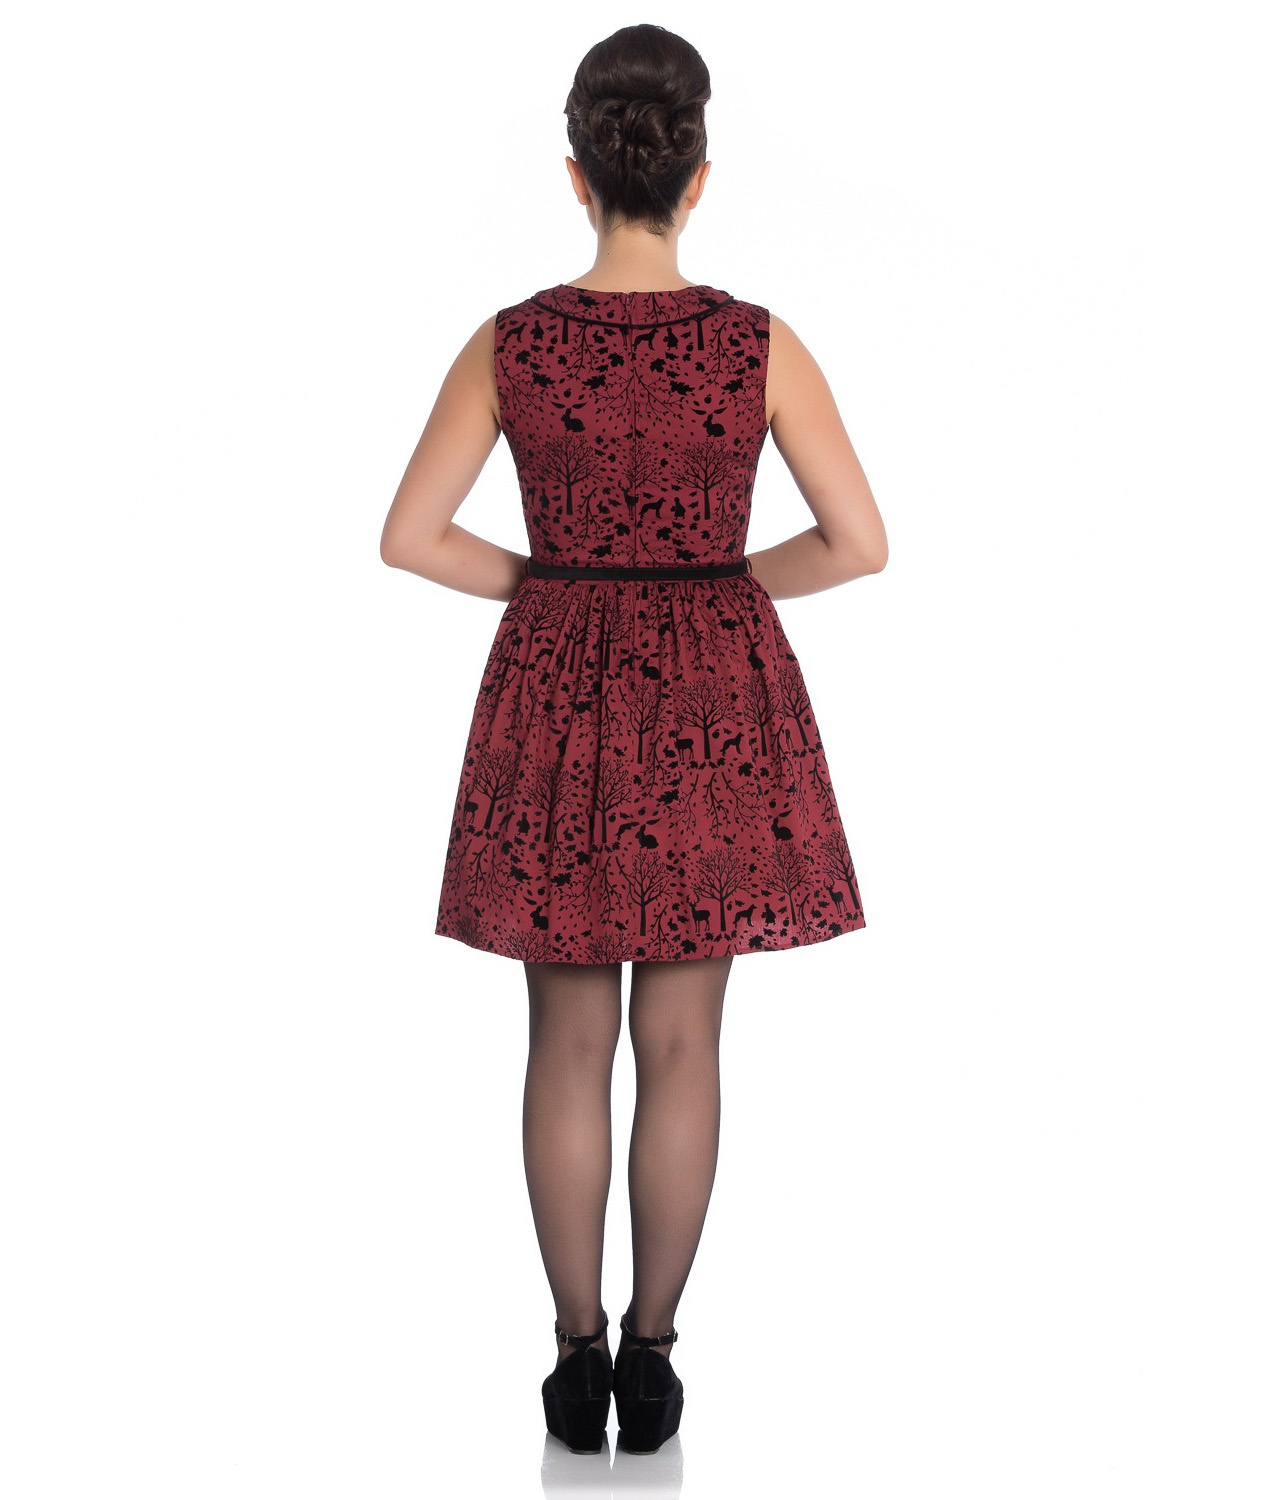 Hell-Bunny-50s-Mini-Skater-Dress-Woodland-Trees-SHERWOOD-Black-Red-All-Sizes thumbnail 21